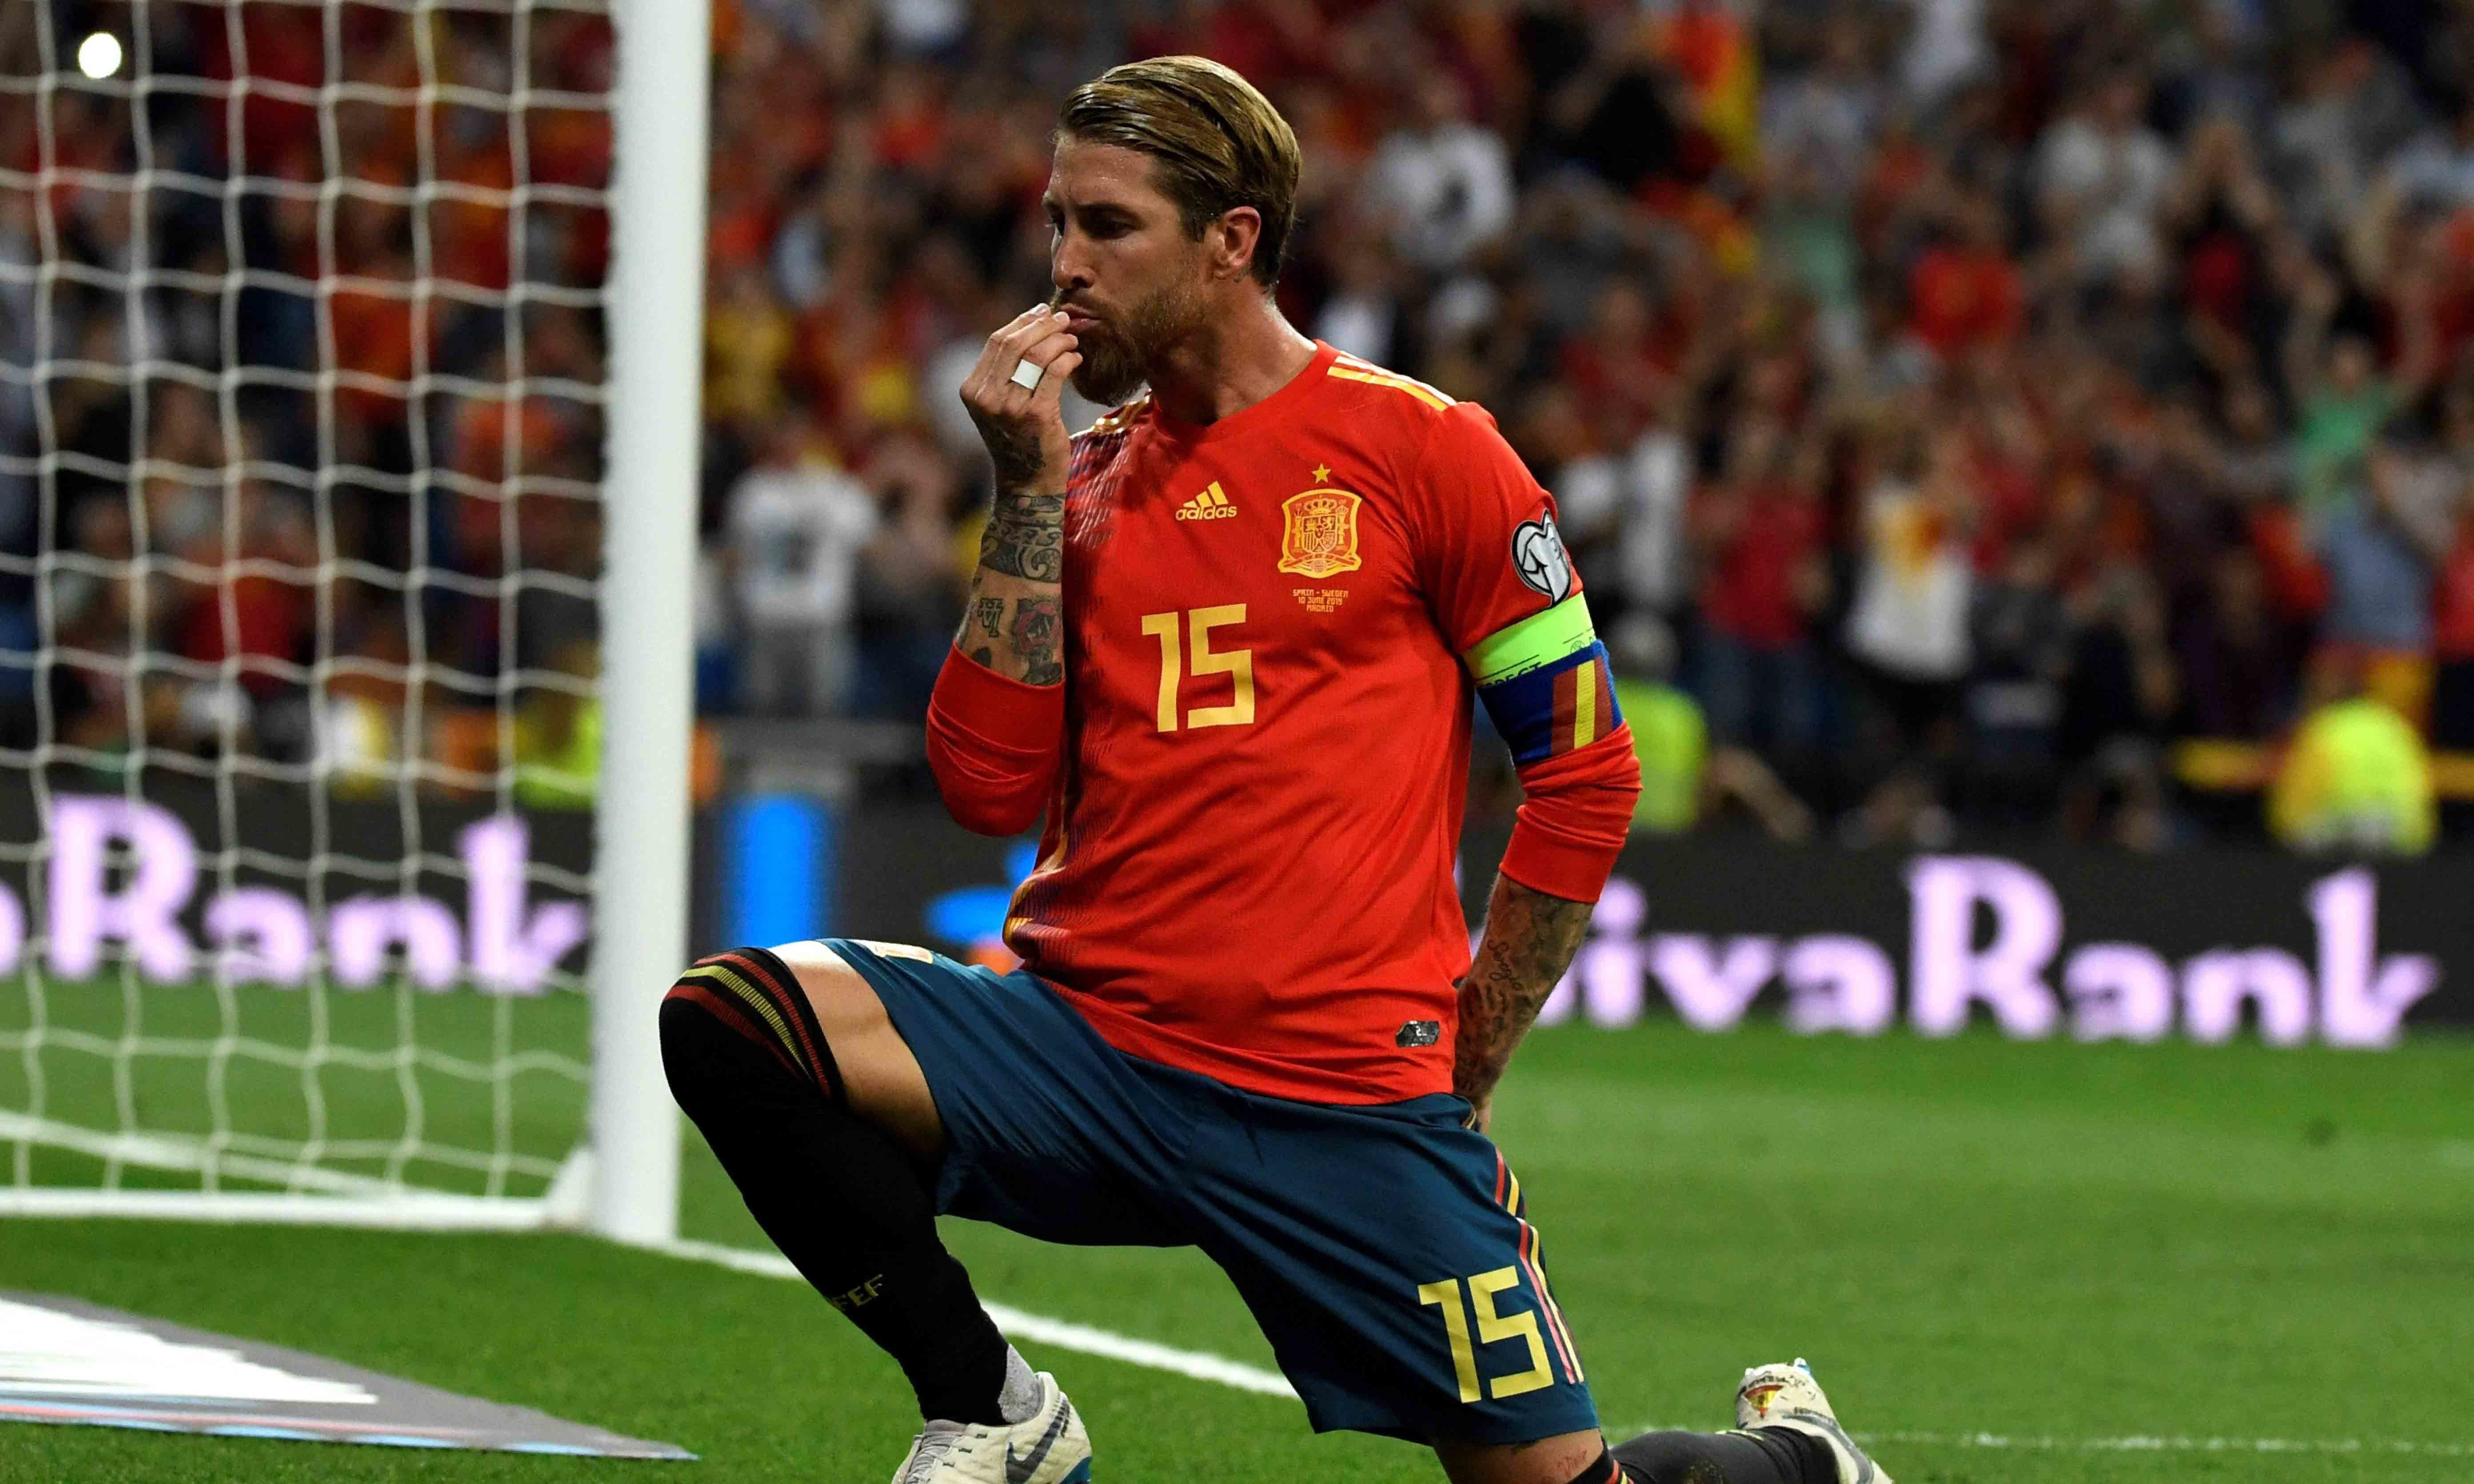 Spain's defender Sergio Ramos celebrates after scoring a penalty during the UEFA Euro 2020 group F qualifying football match between Spain and Sweden at the Santiago Bernabeu stadium in Madrid on June 10, 2019. — AFP